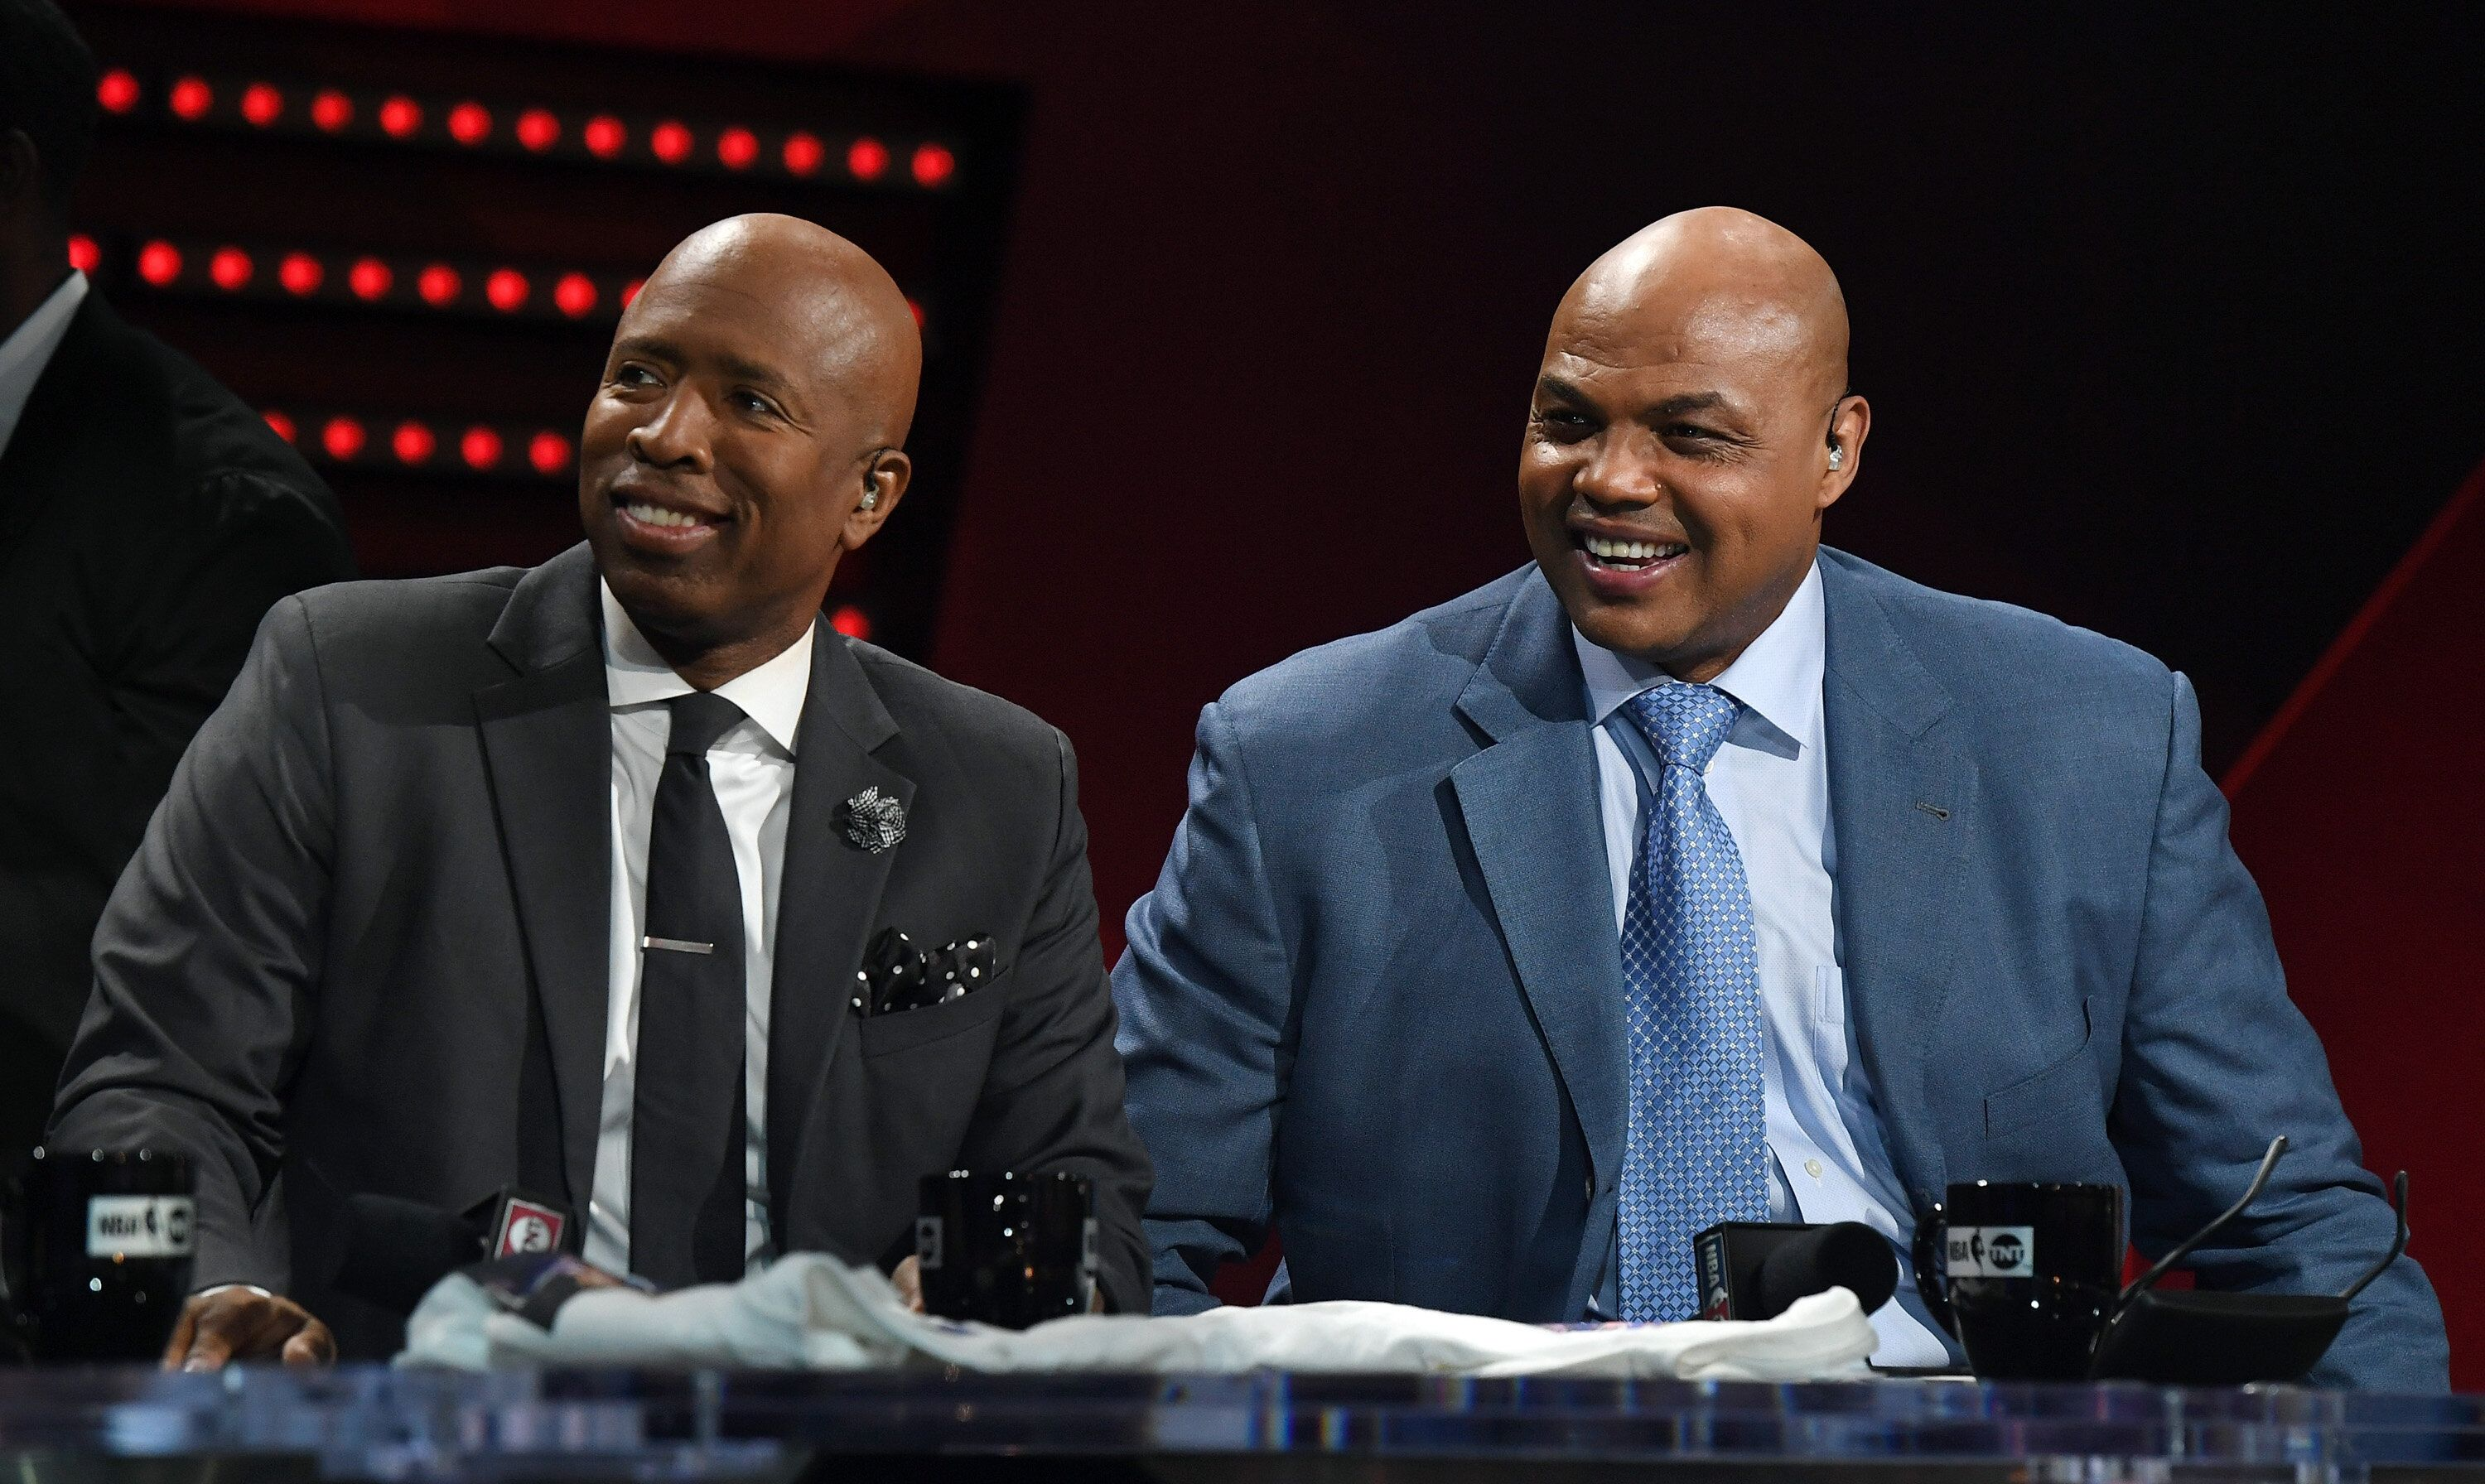 """NBA analysts Kenny Smith and Charles Barkley laugh during a live telecast of """"NBA on TNT"""" in 2017."""